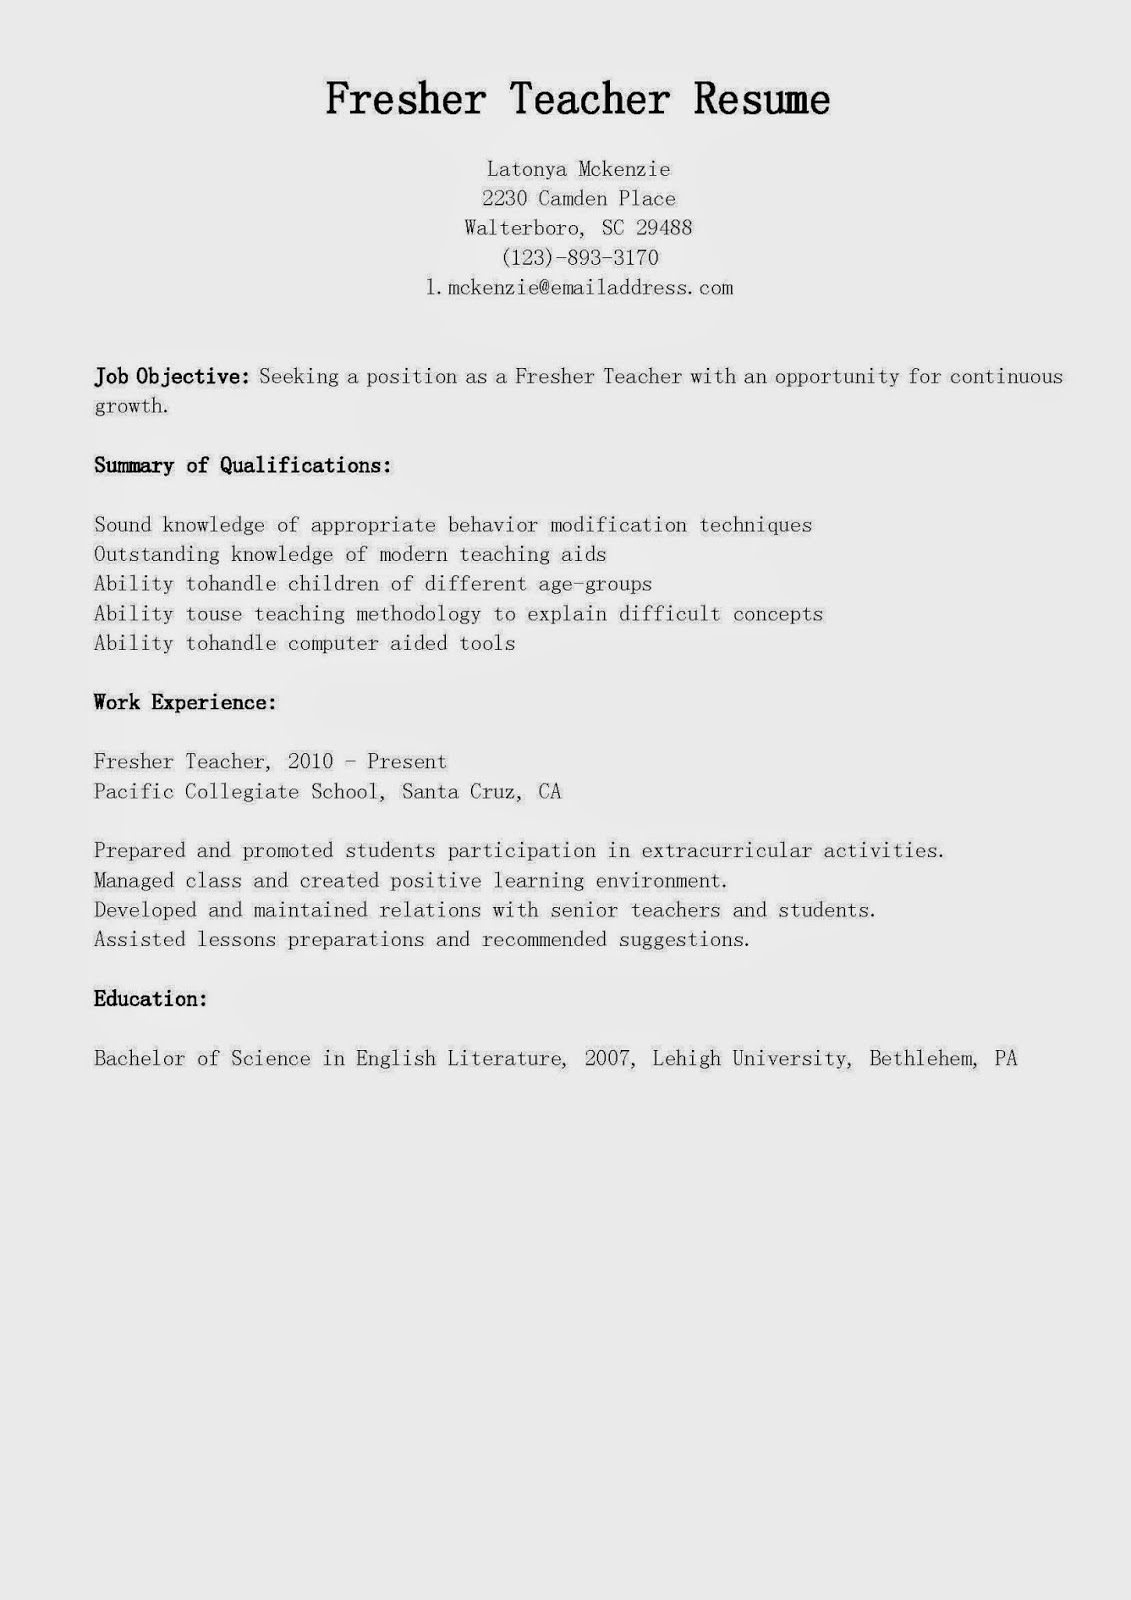 fresher computer teacher resume sample